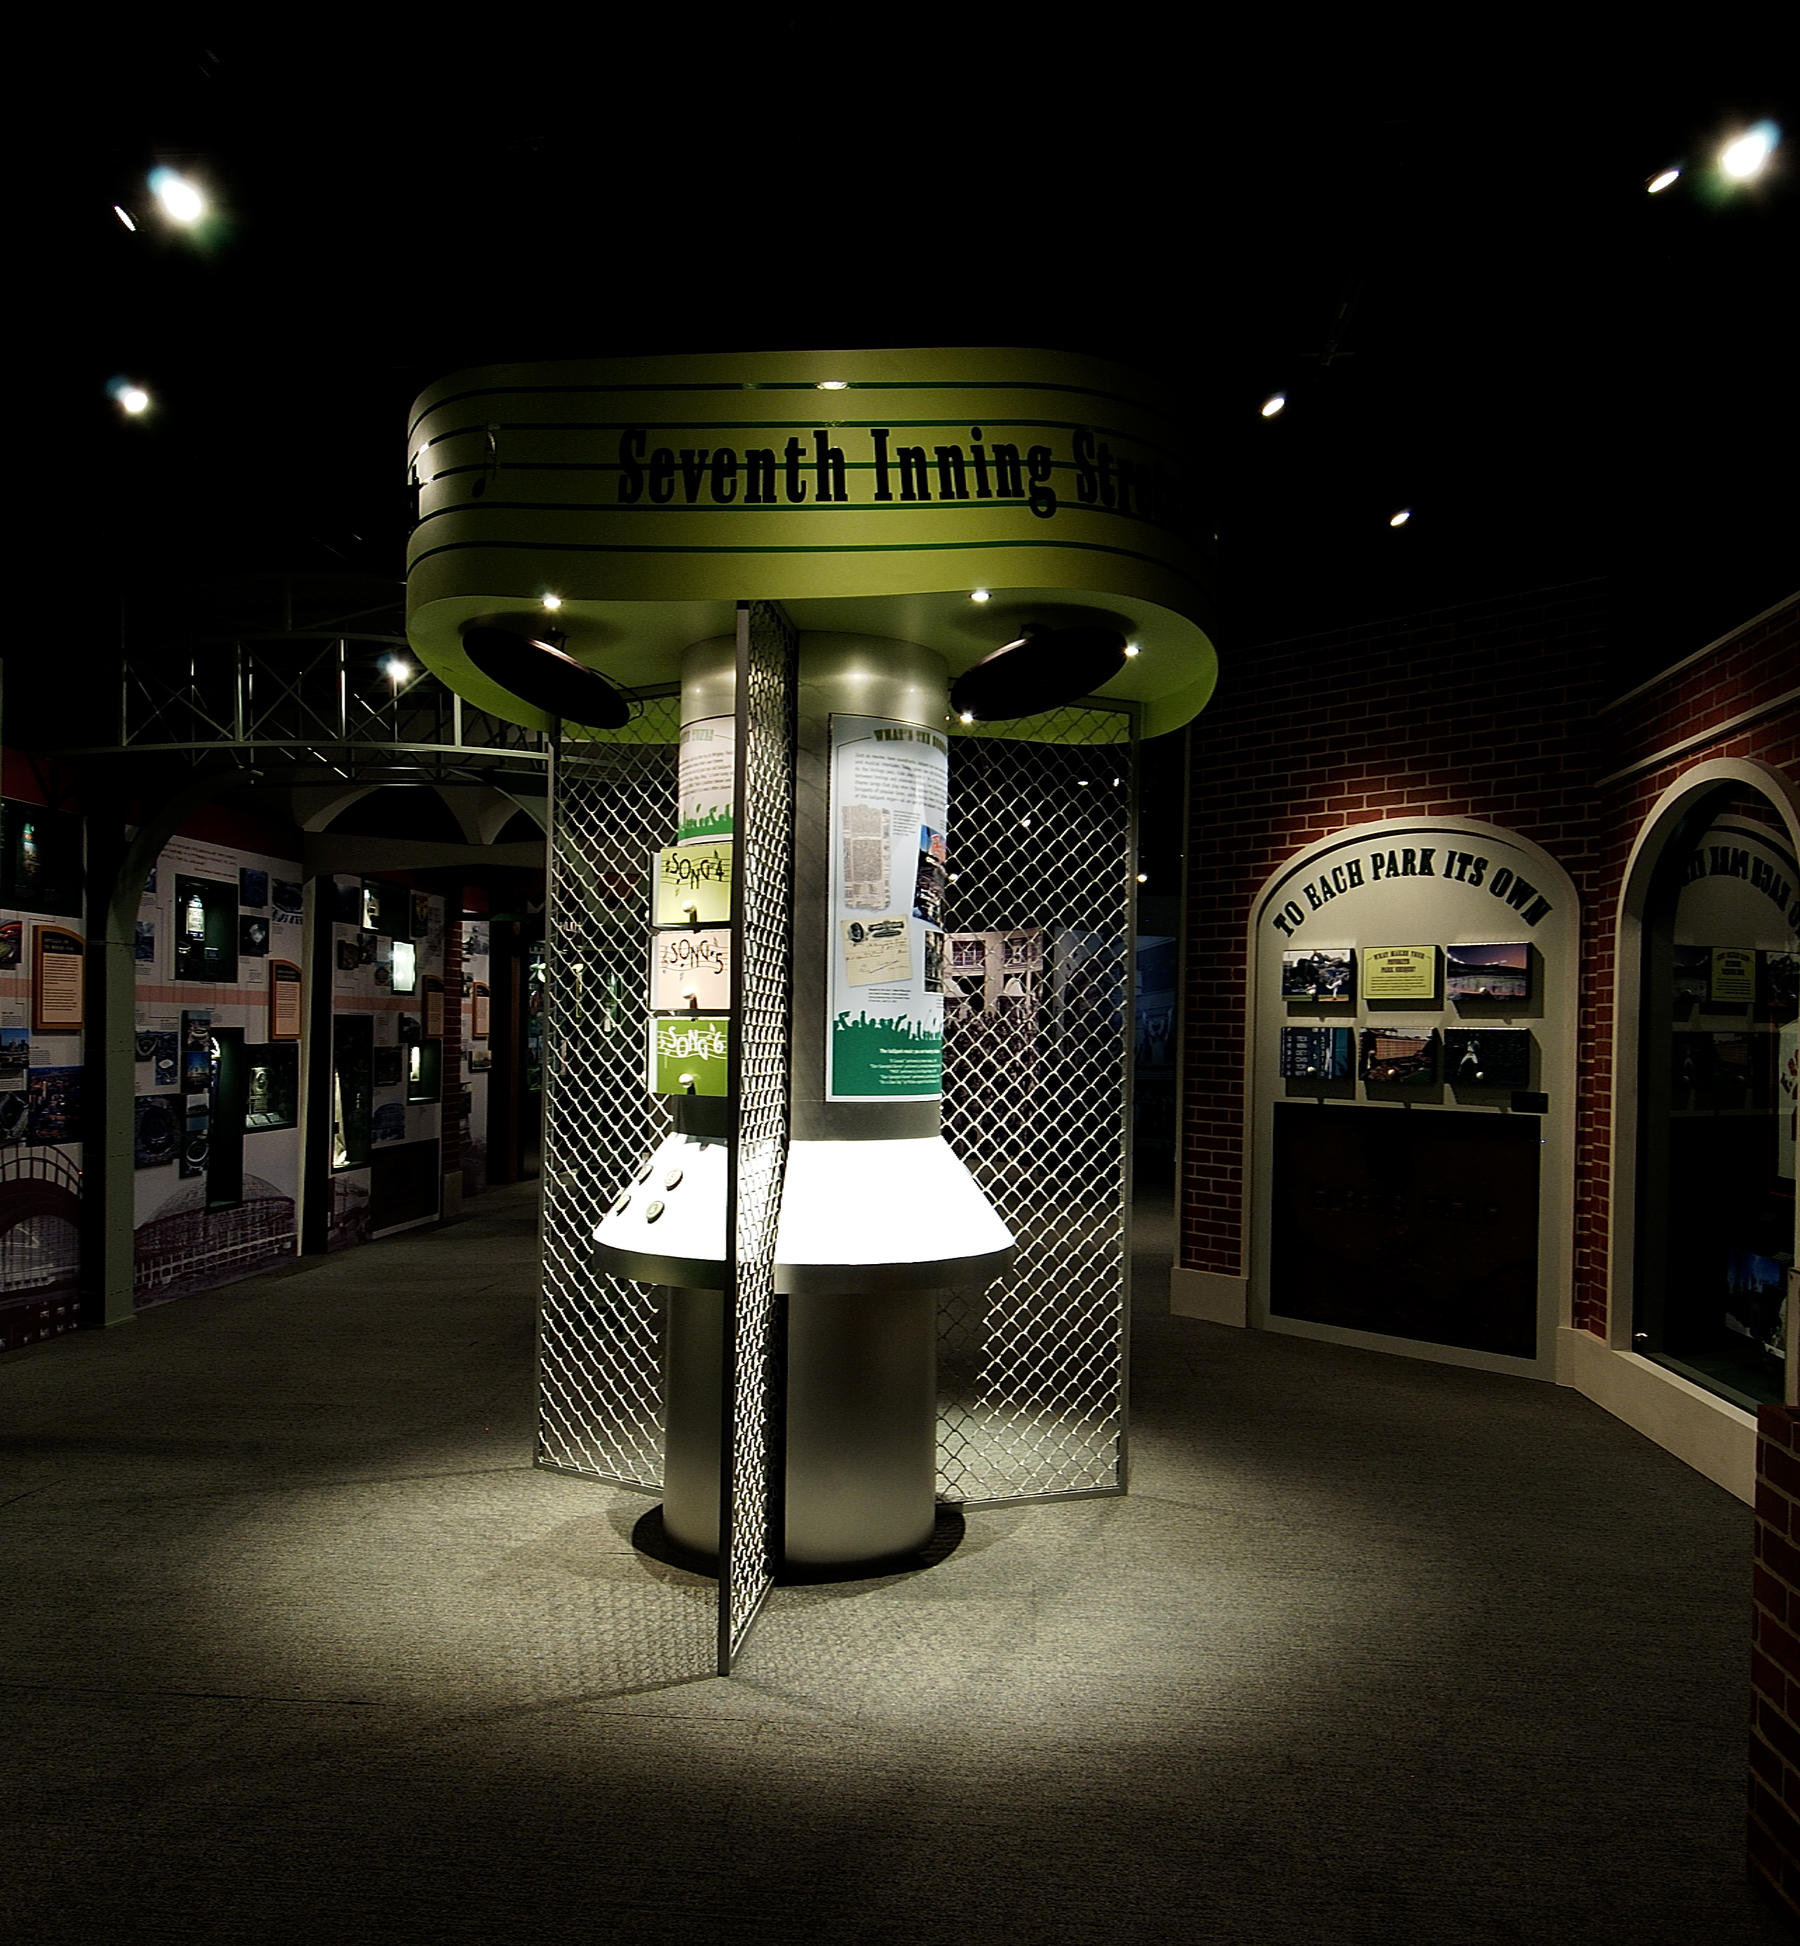 The Museum's Sacred Ground exhibit features an interactive song element where visitors can experience some of baseball's greatest hits. (Milo Stewart, Jr. / National Baseball Hall of Fame)